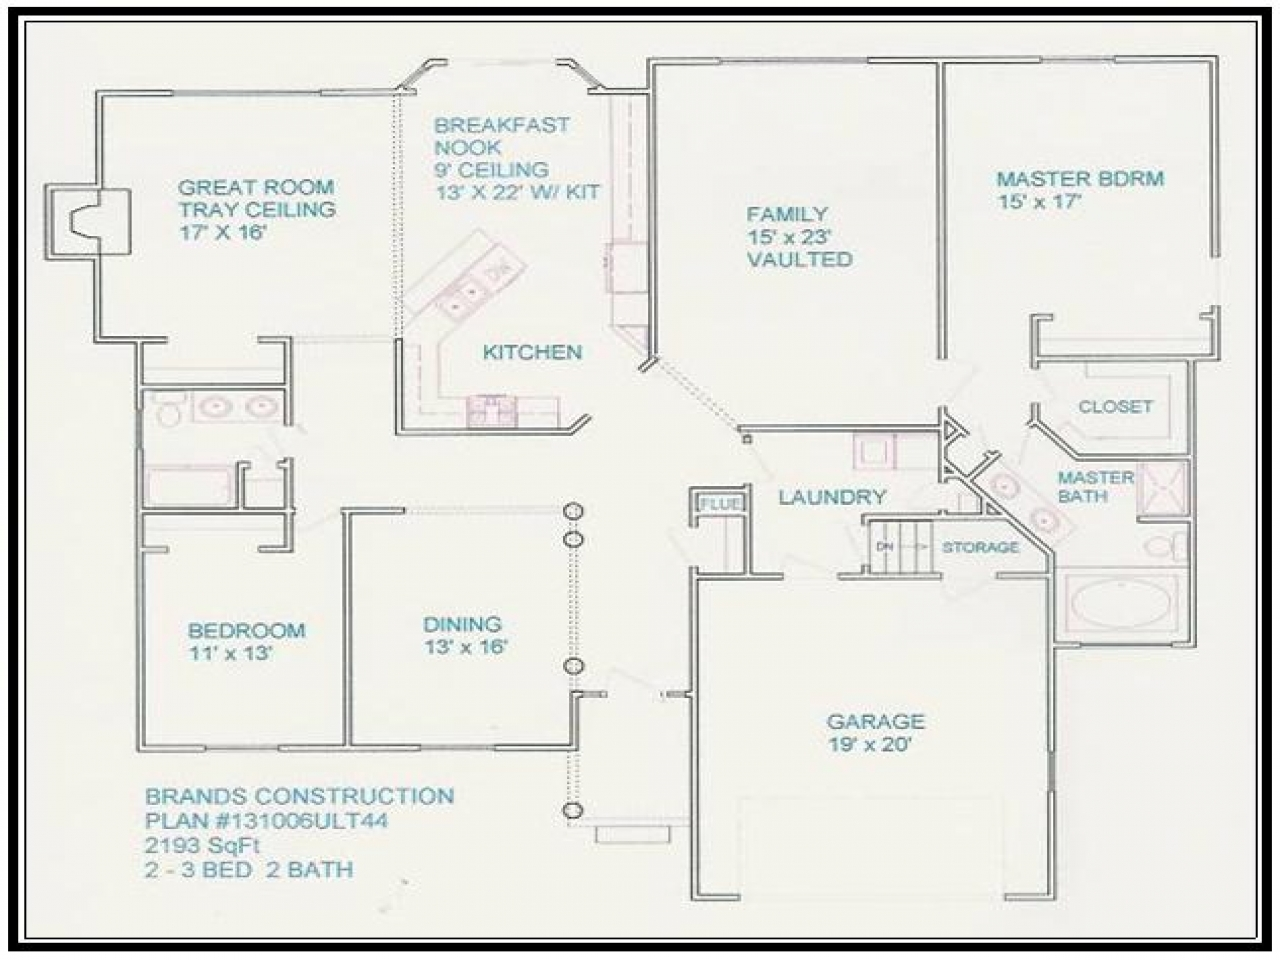 free floor plans free house floor plans and designs design your own floor plan download house plans treesranch com 3162